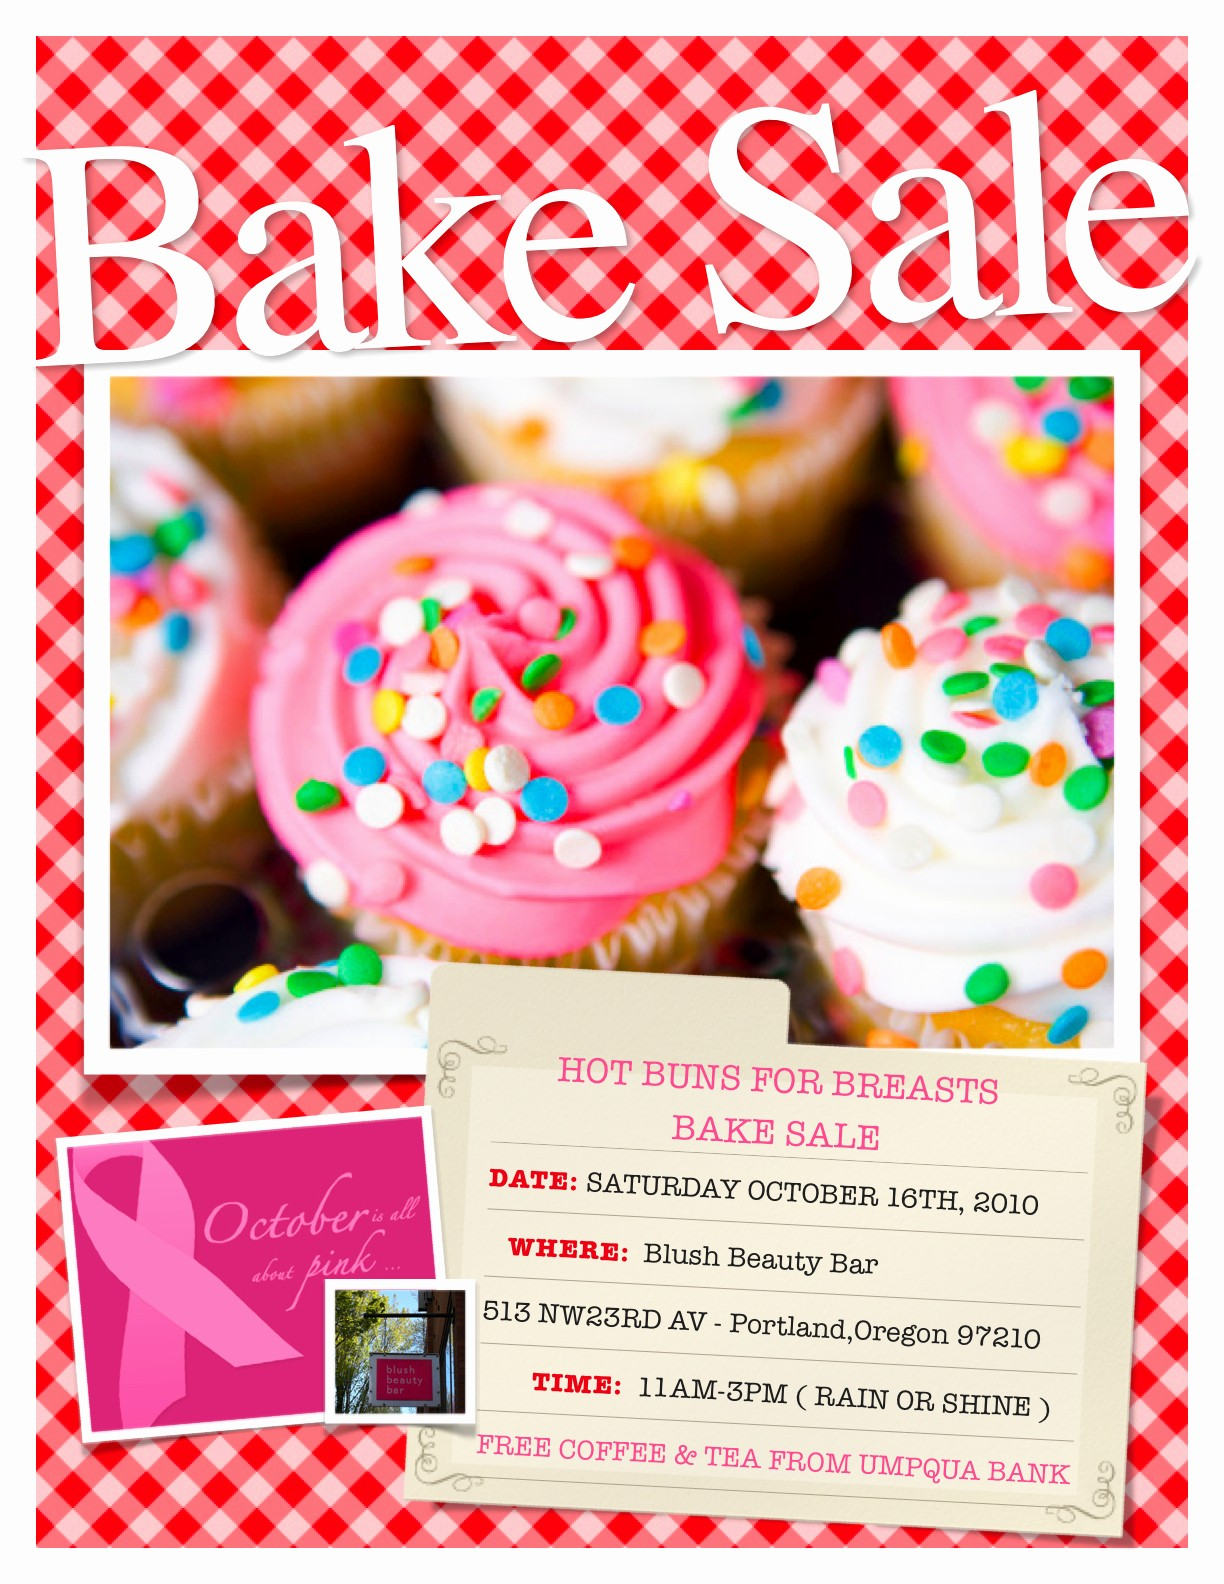 Bake Sale Flyer Template Microsoft Lovely Hot Buns for Breats Bake Sale